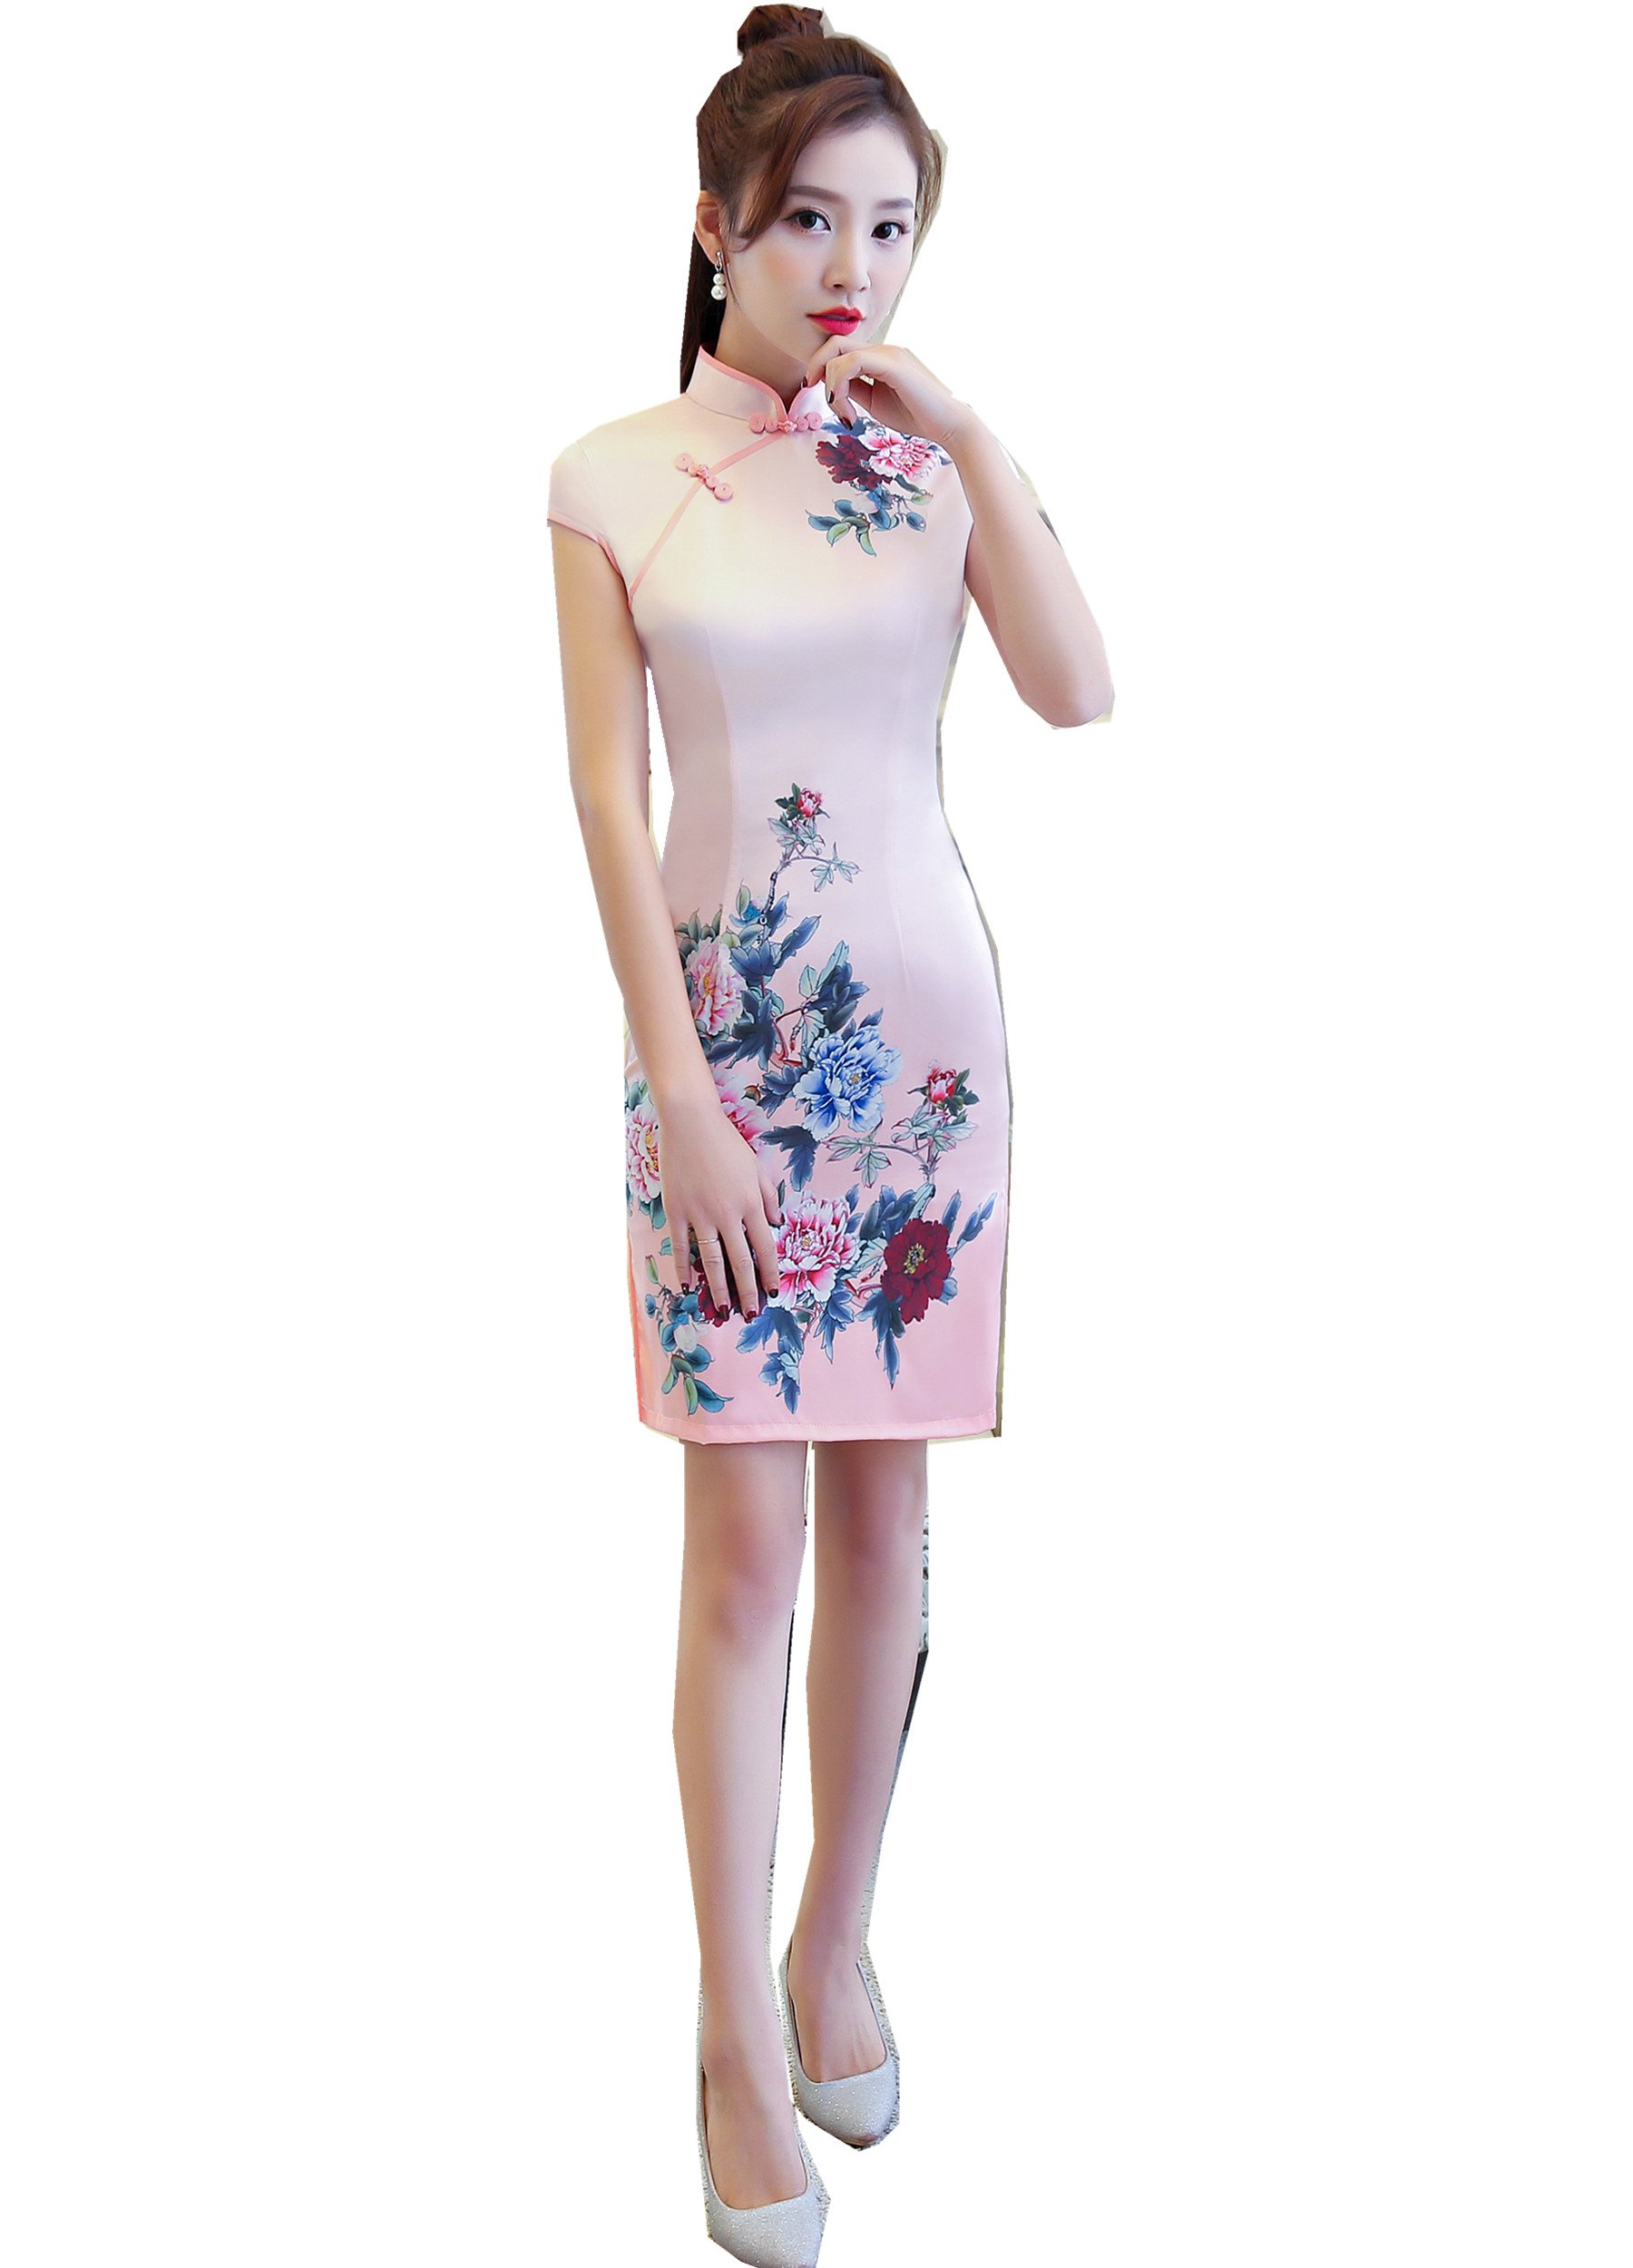 Shanghai Story Chinese Dress Short Sleeve Summer Cheongsam Qipao XL